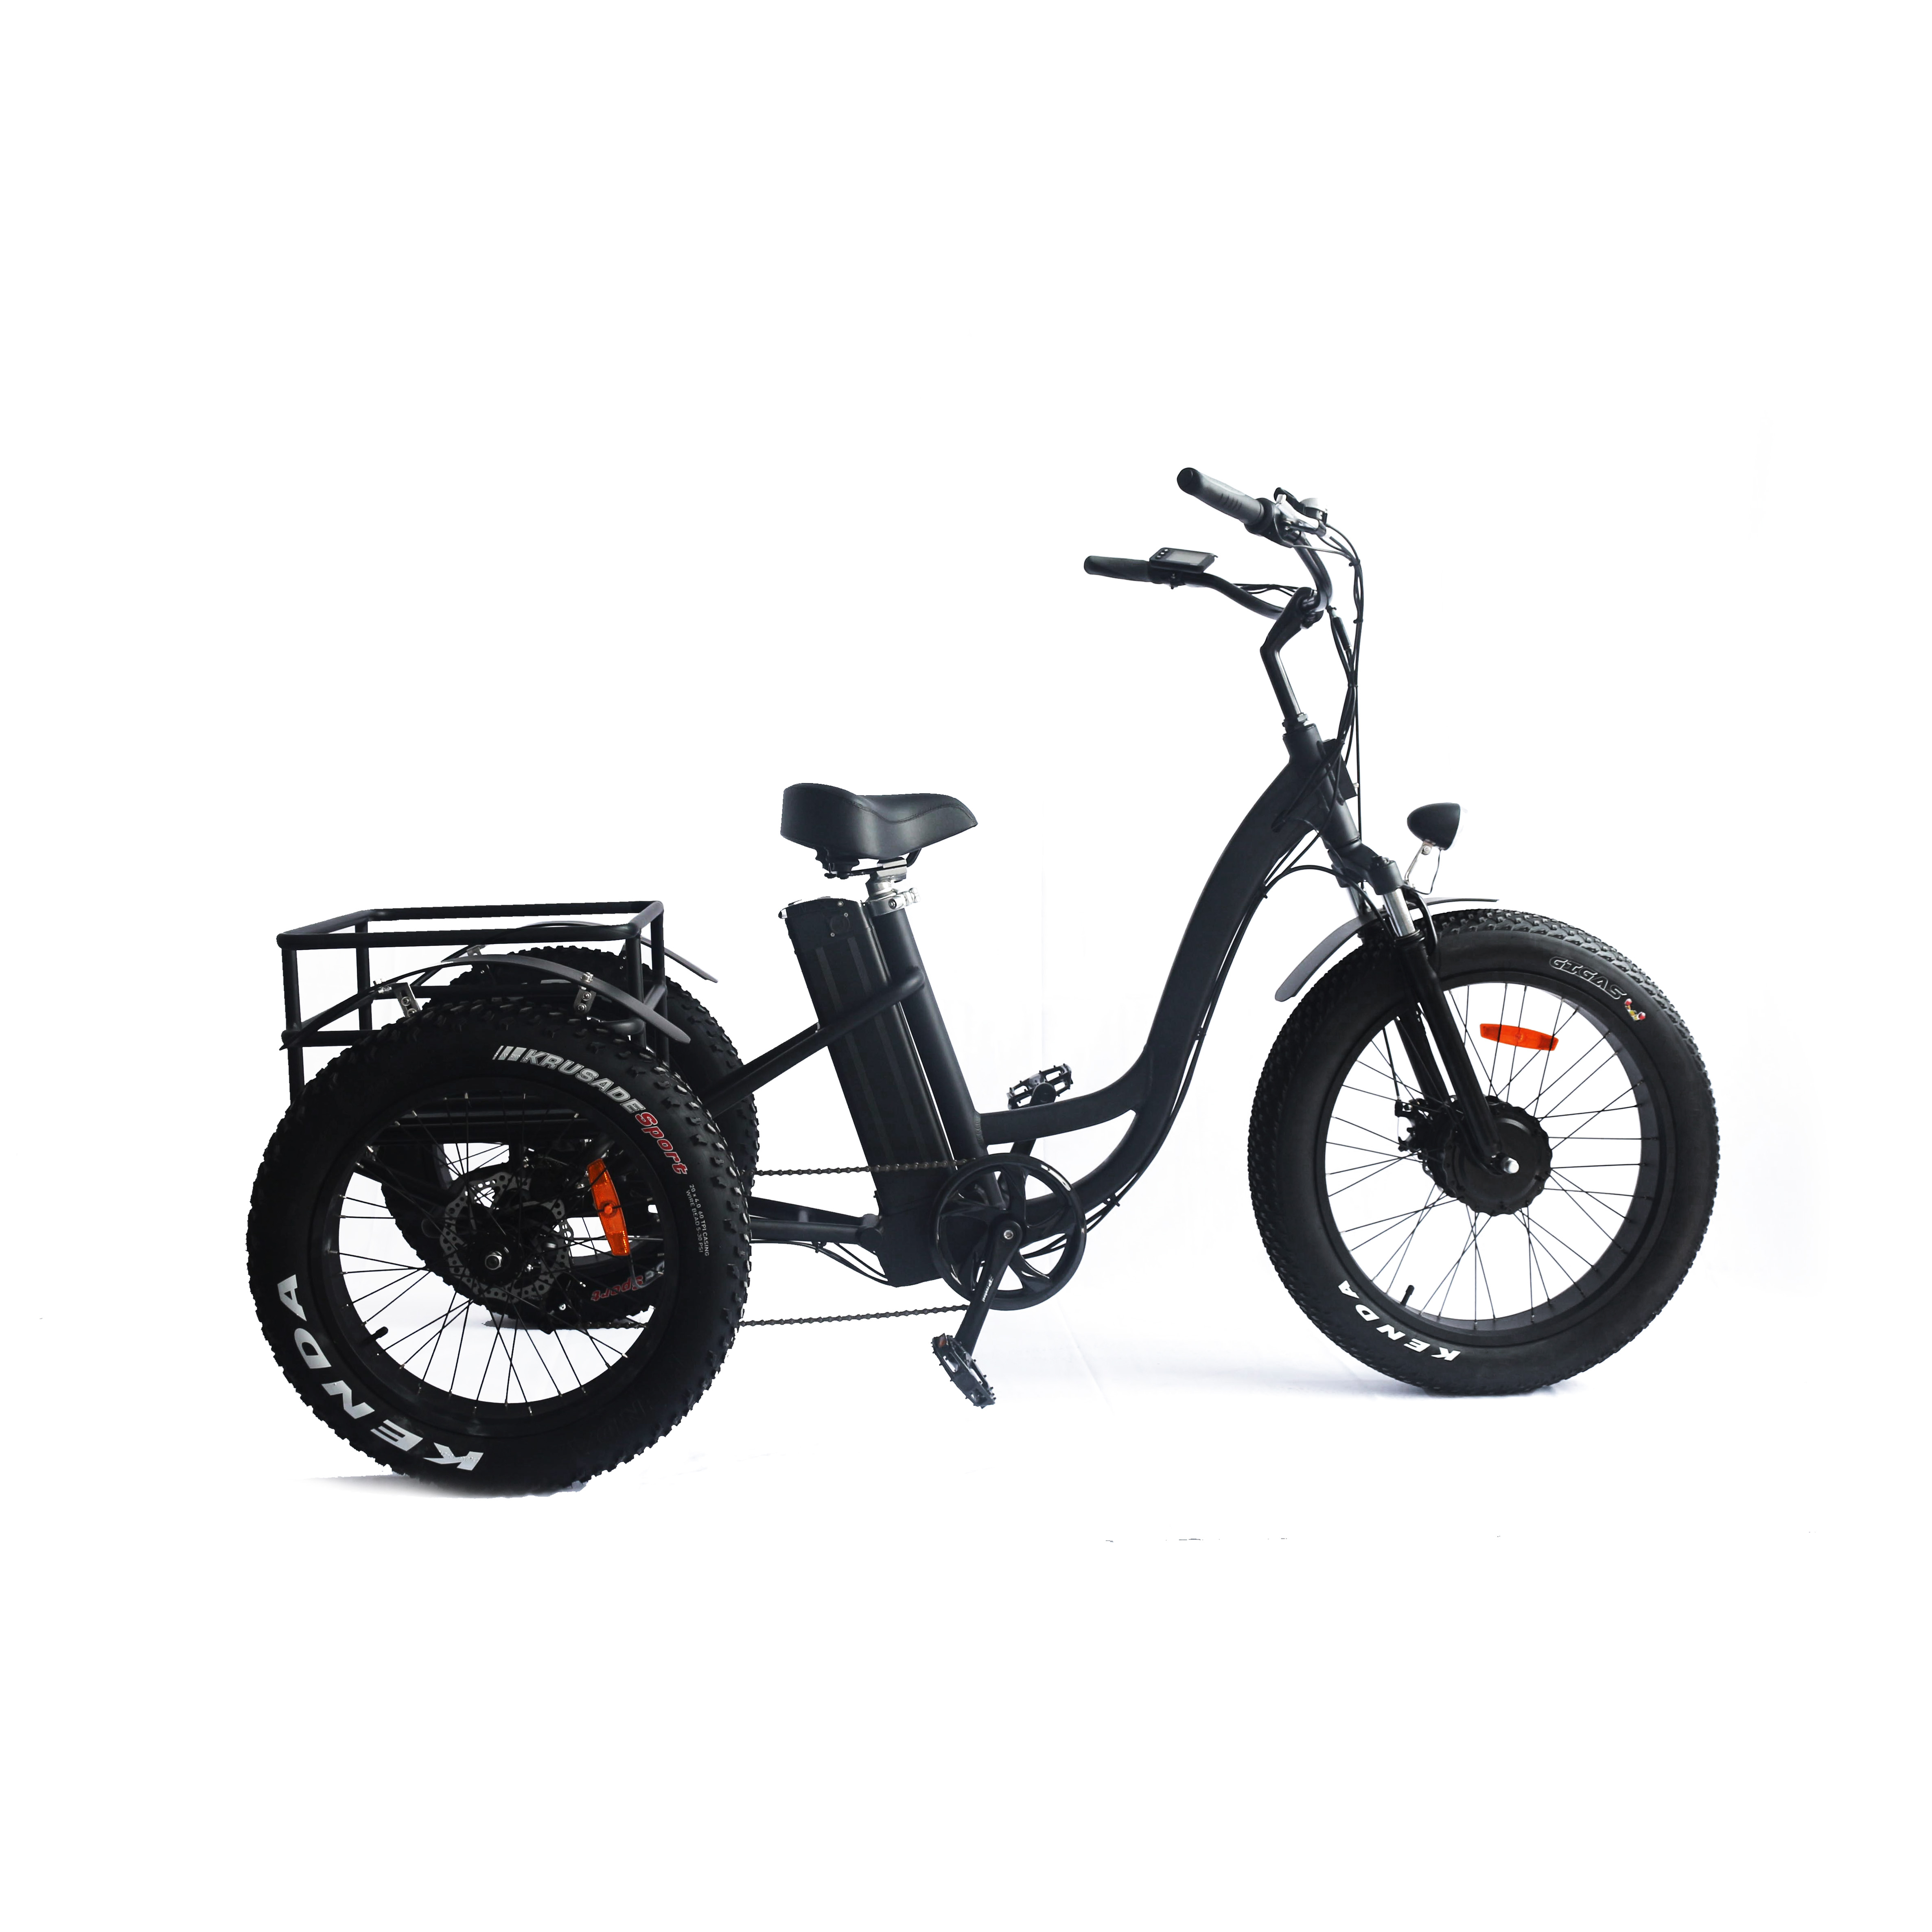 2018 adult boosted electric tricycle for wholesale <strong>price</strong> with basket